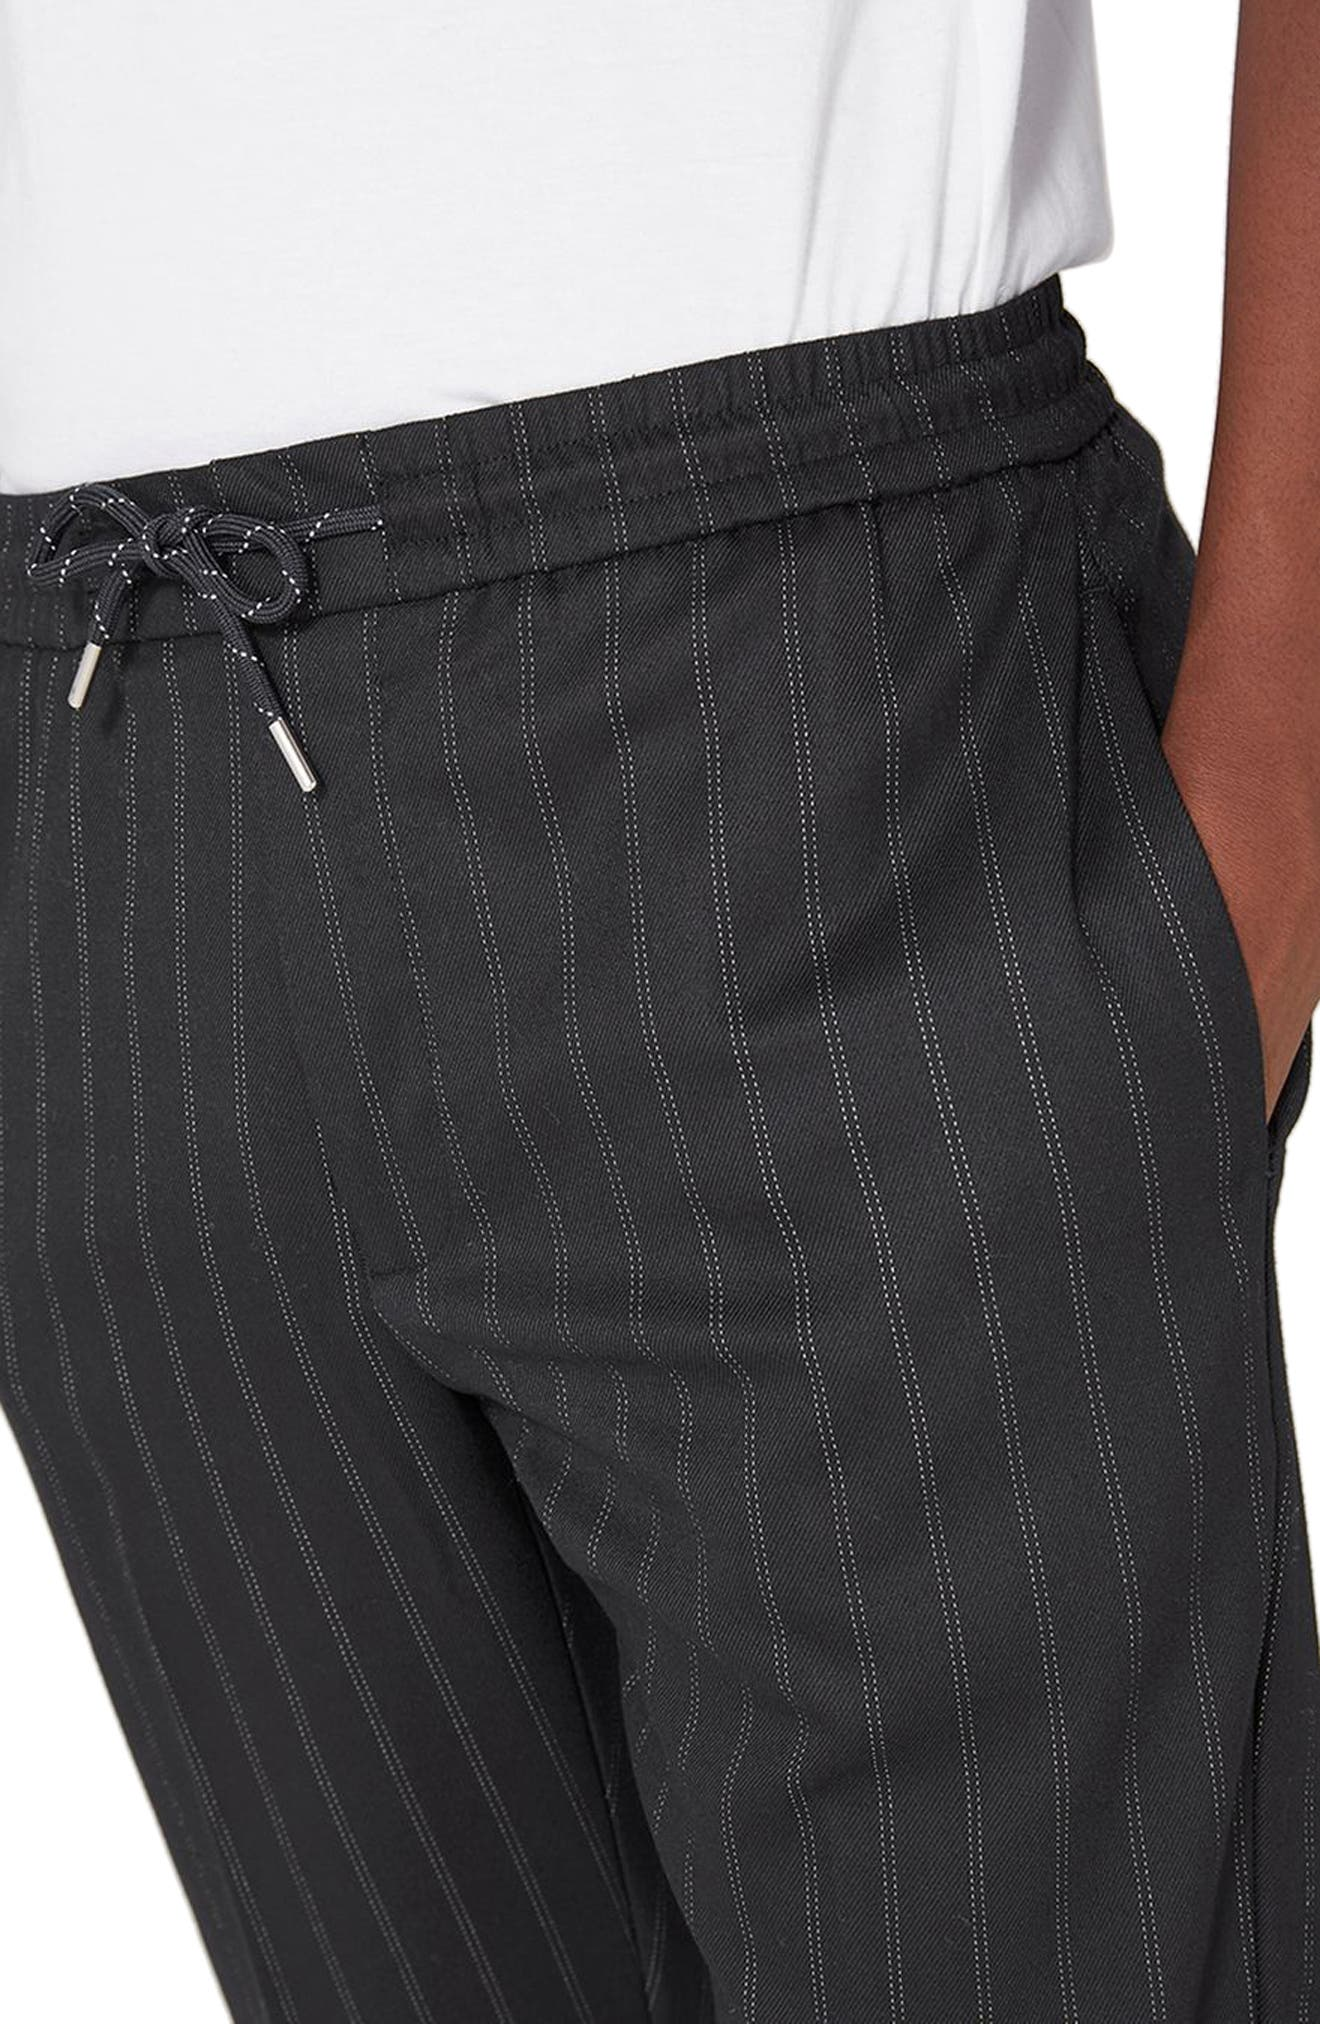 Pinstripe Crop Smart Joggers,                             Alternate thumbnail 3, color,                             401